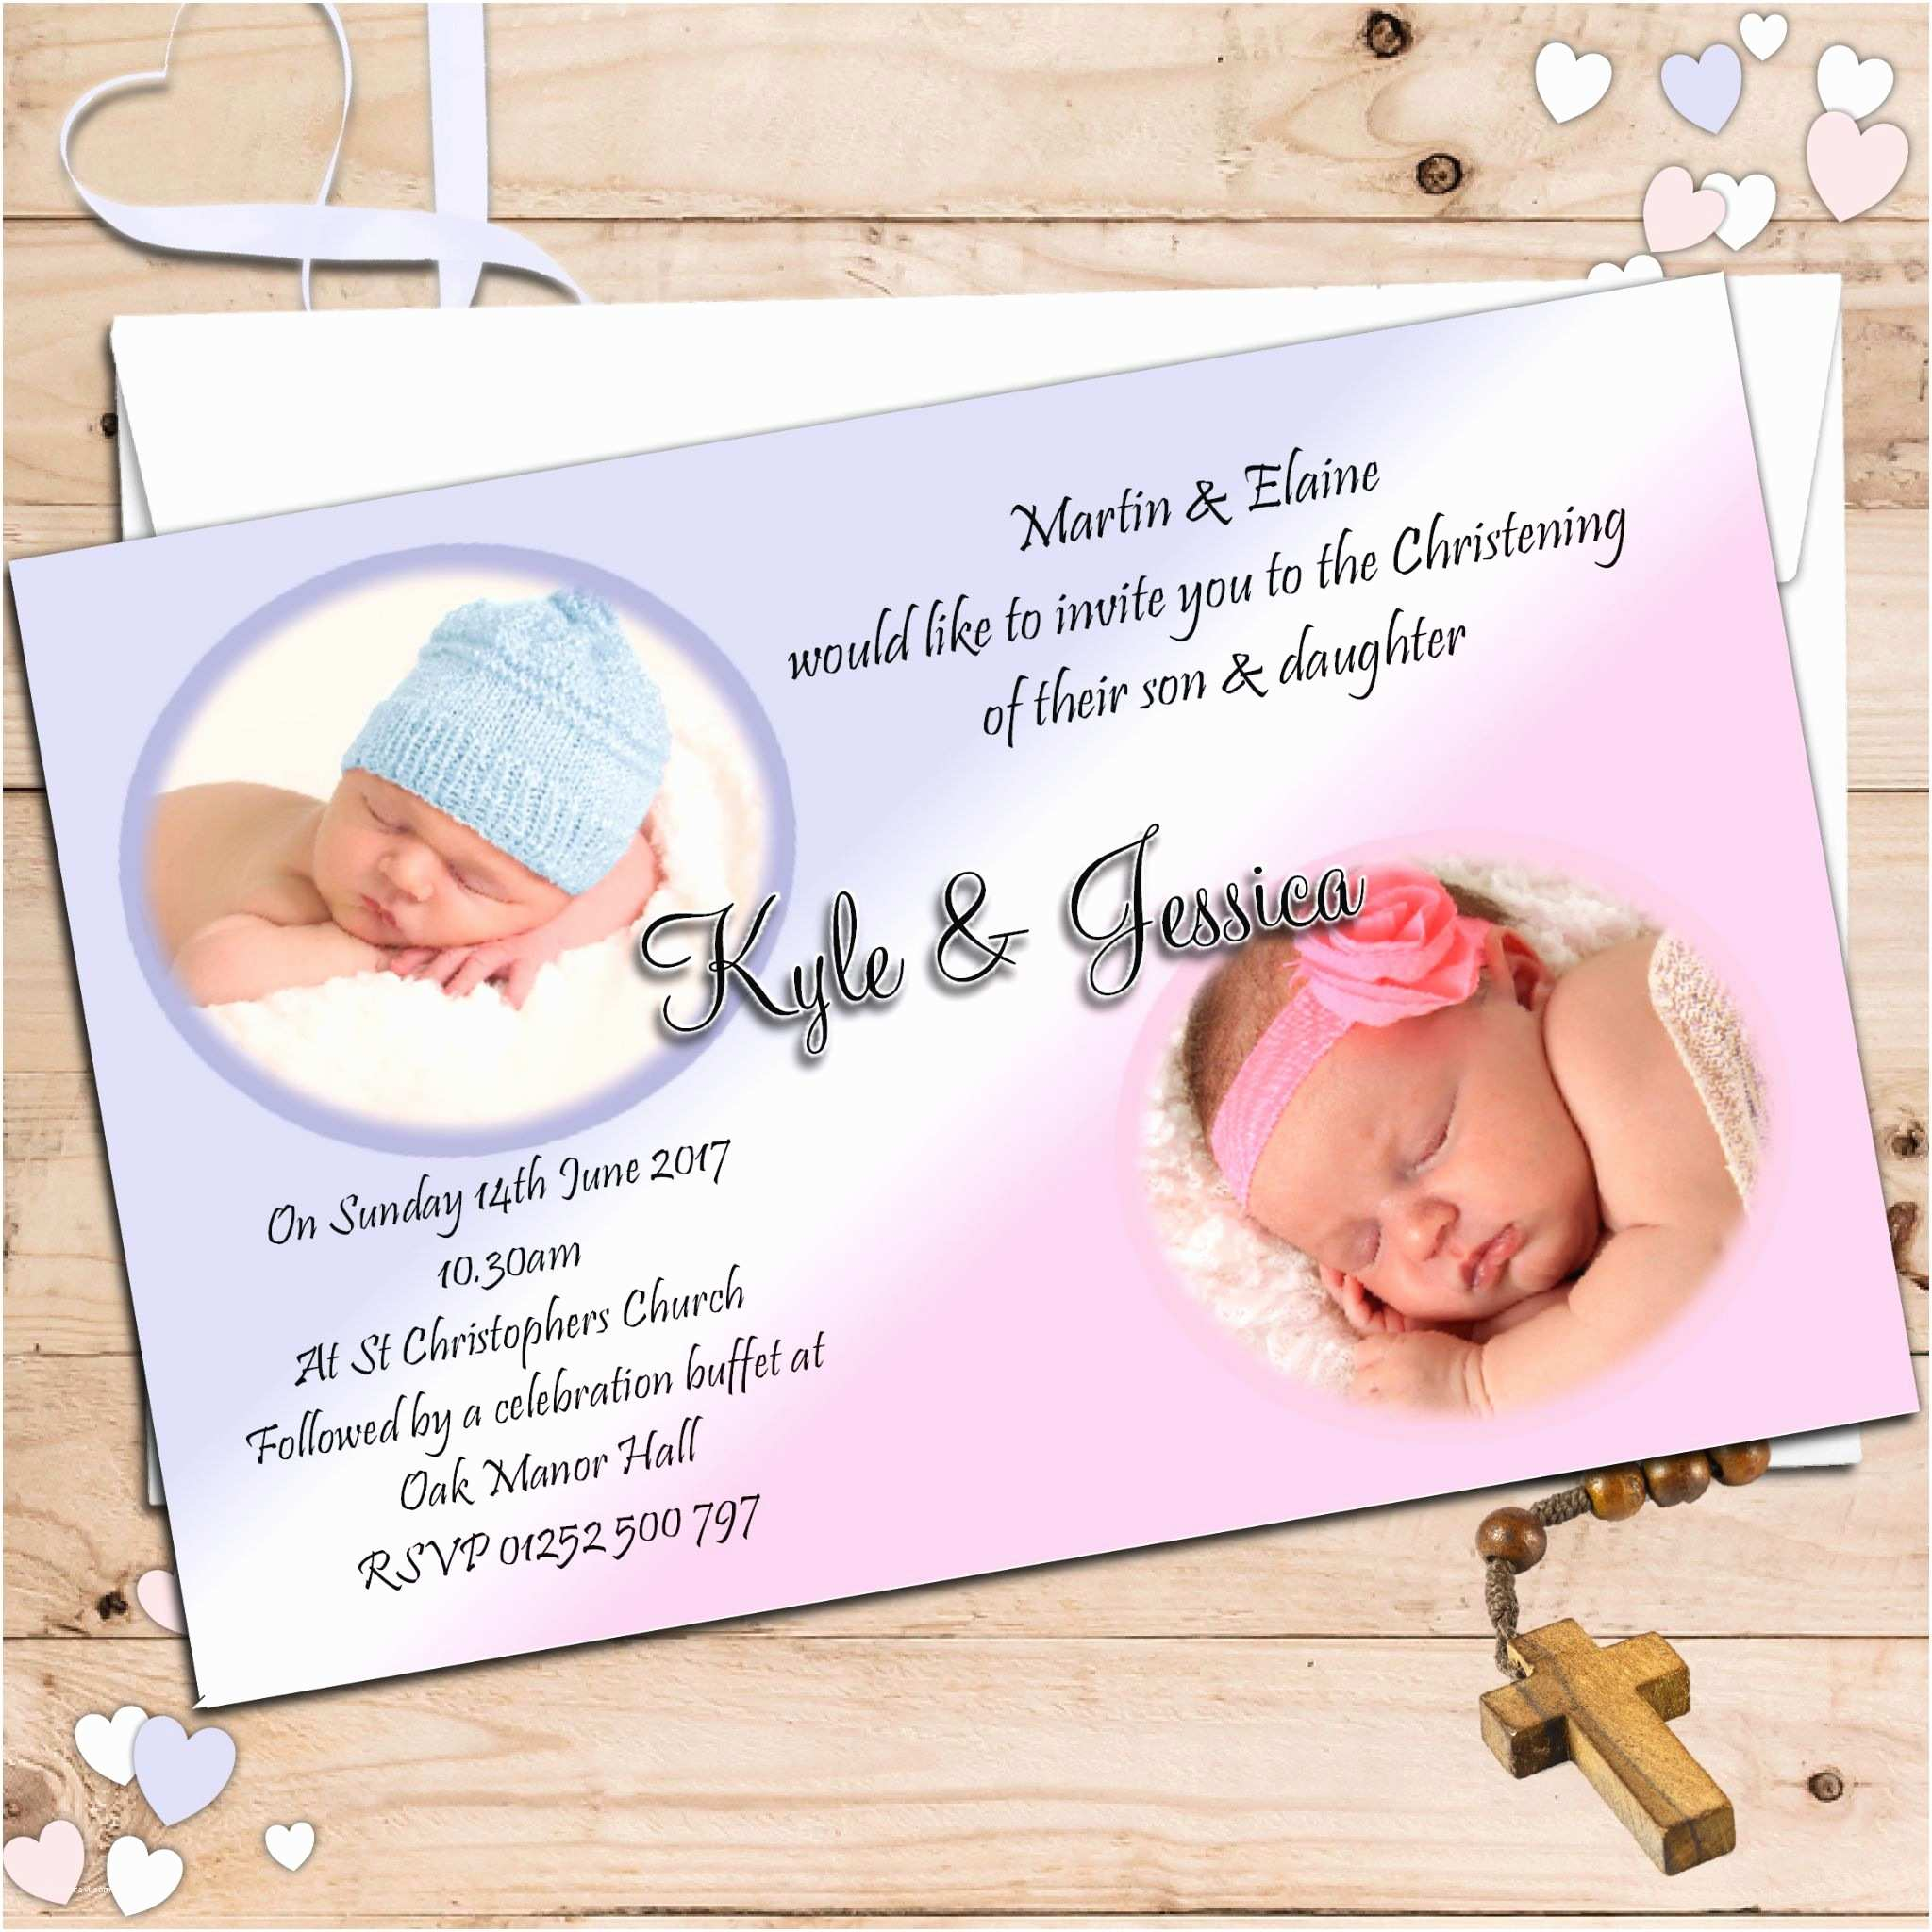 Twin Baptism Invitations Twin Baptism Invitations Twin Boy and Girl Baptism